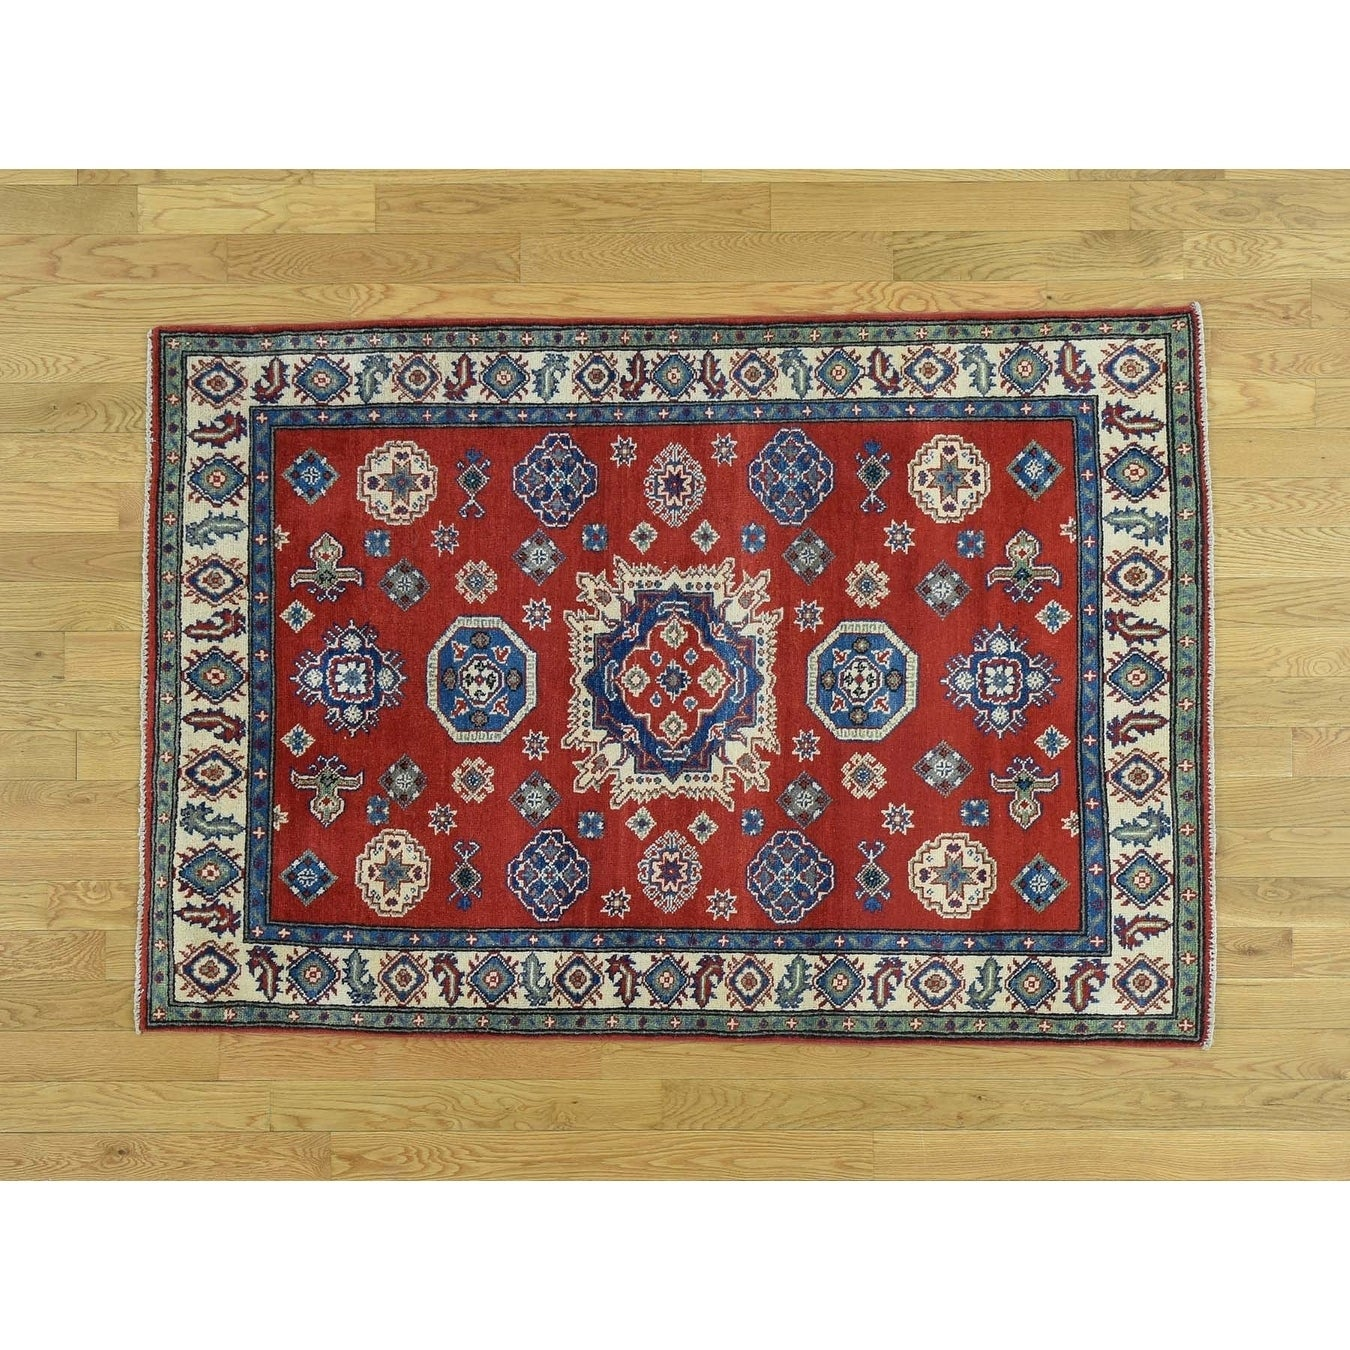 Hand Knotted Red Kazak with Wool Oriental Rug - 310 x 58